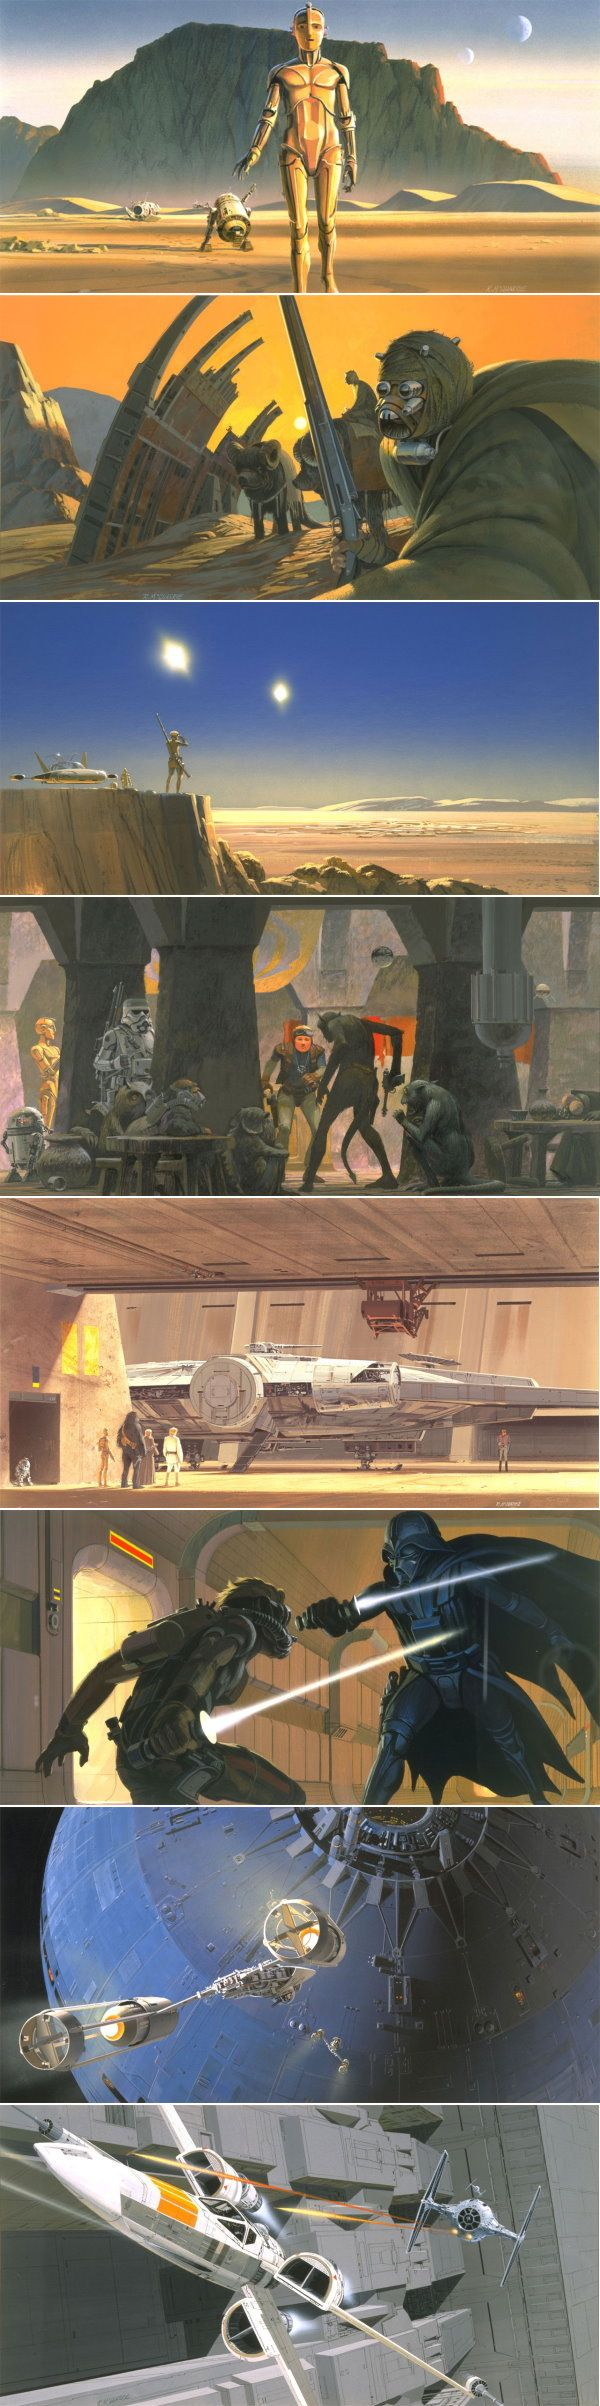 Ralph Mcquarrie  Star Wars Episode Iv Production Paintings